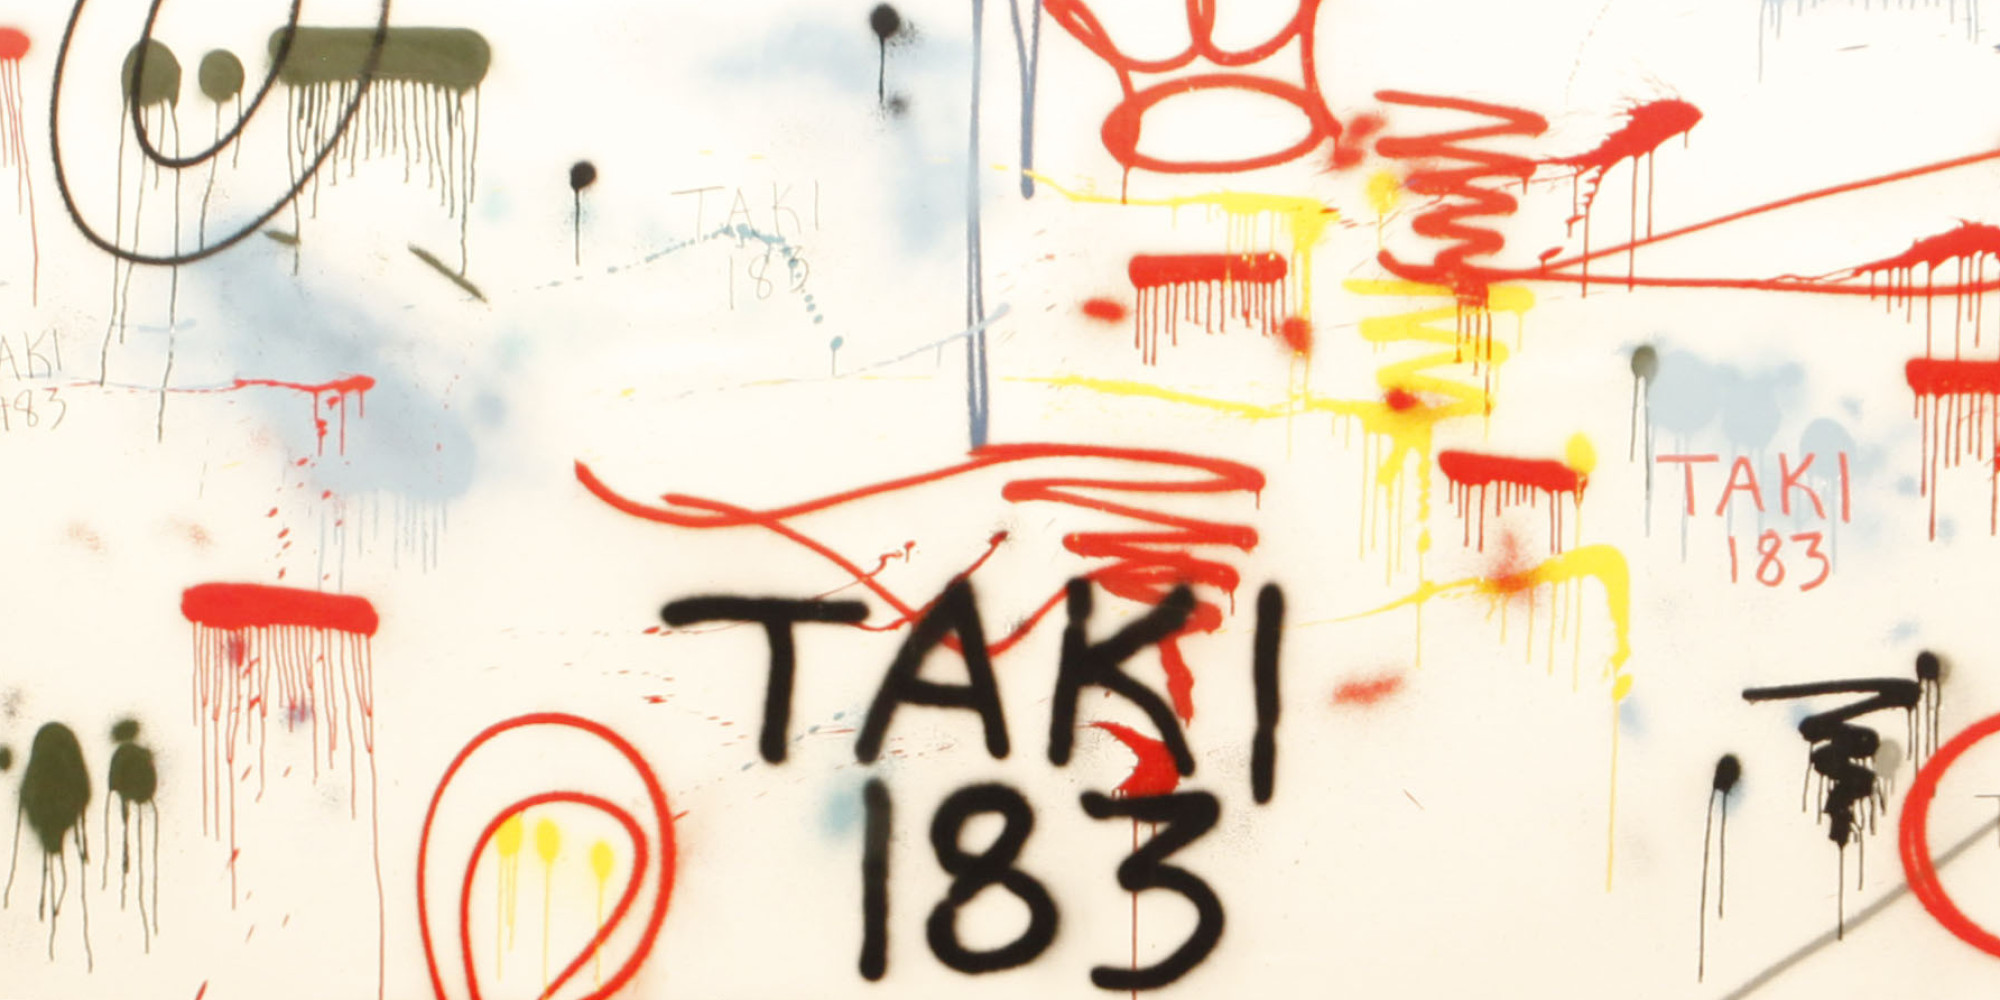 Graffiti Artist Taki 183 Captivated New York Decades Before Banksy |  HuffPost